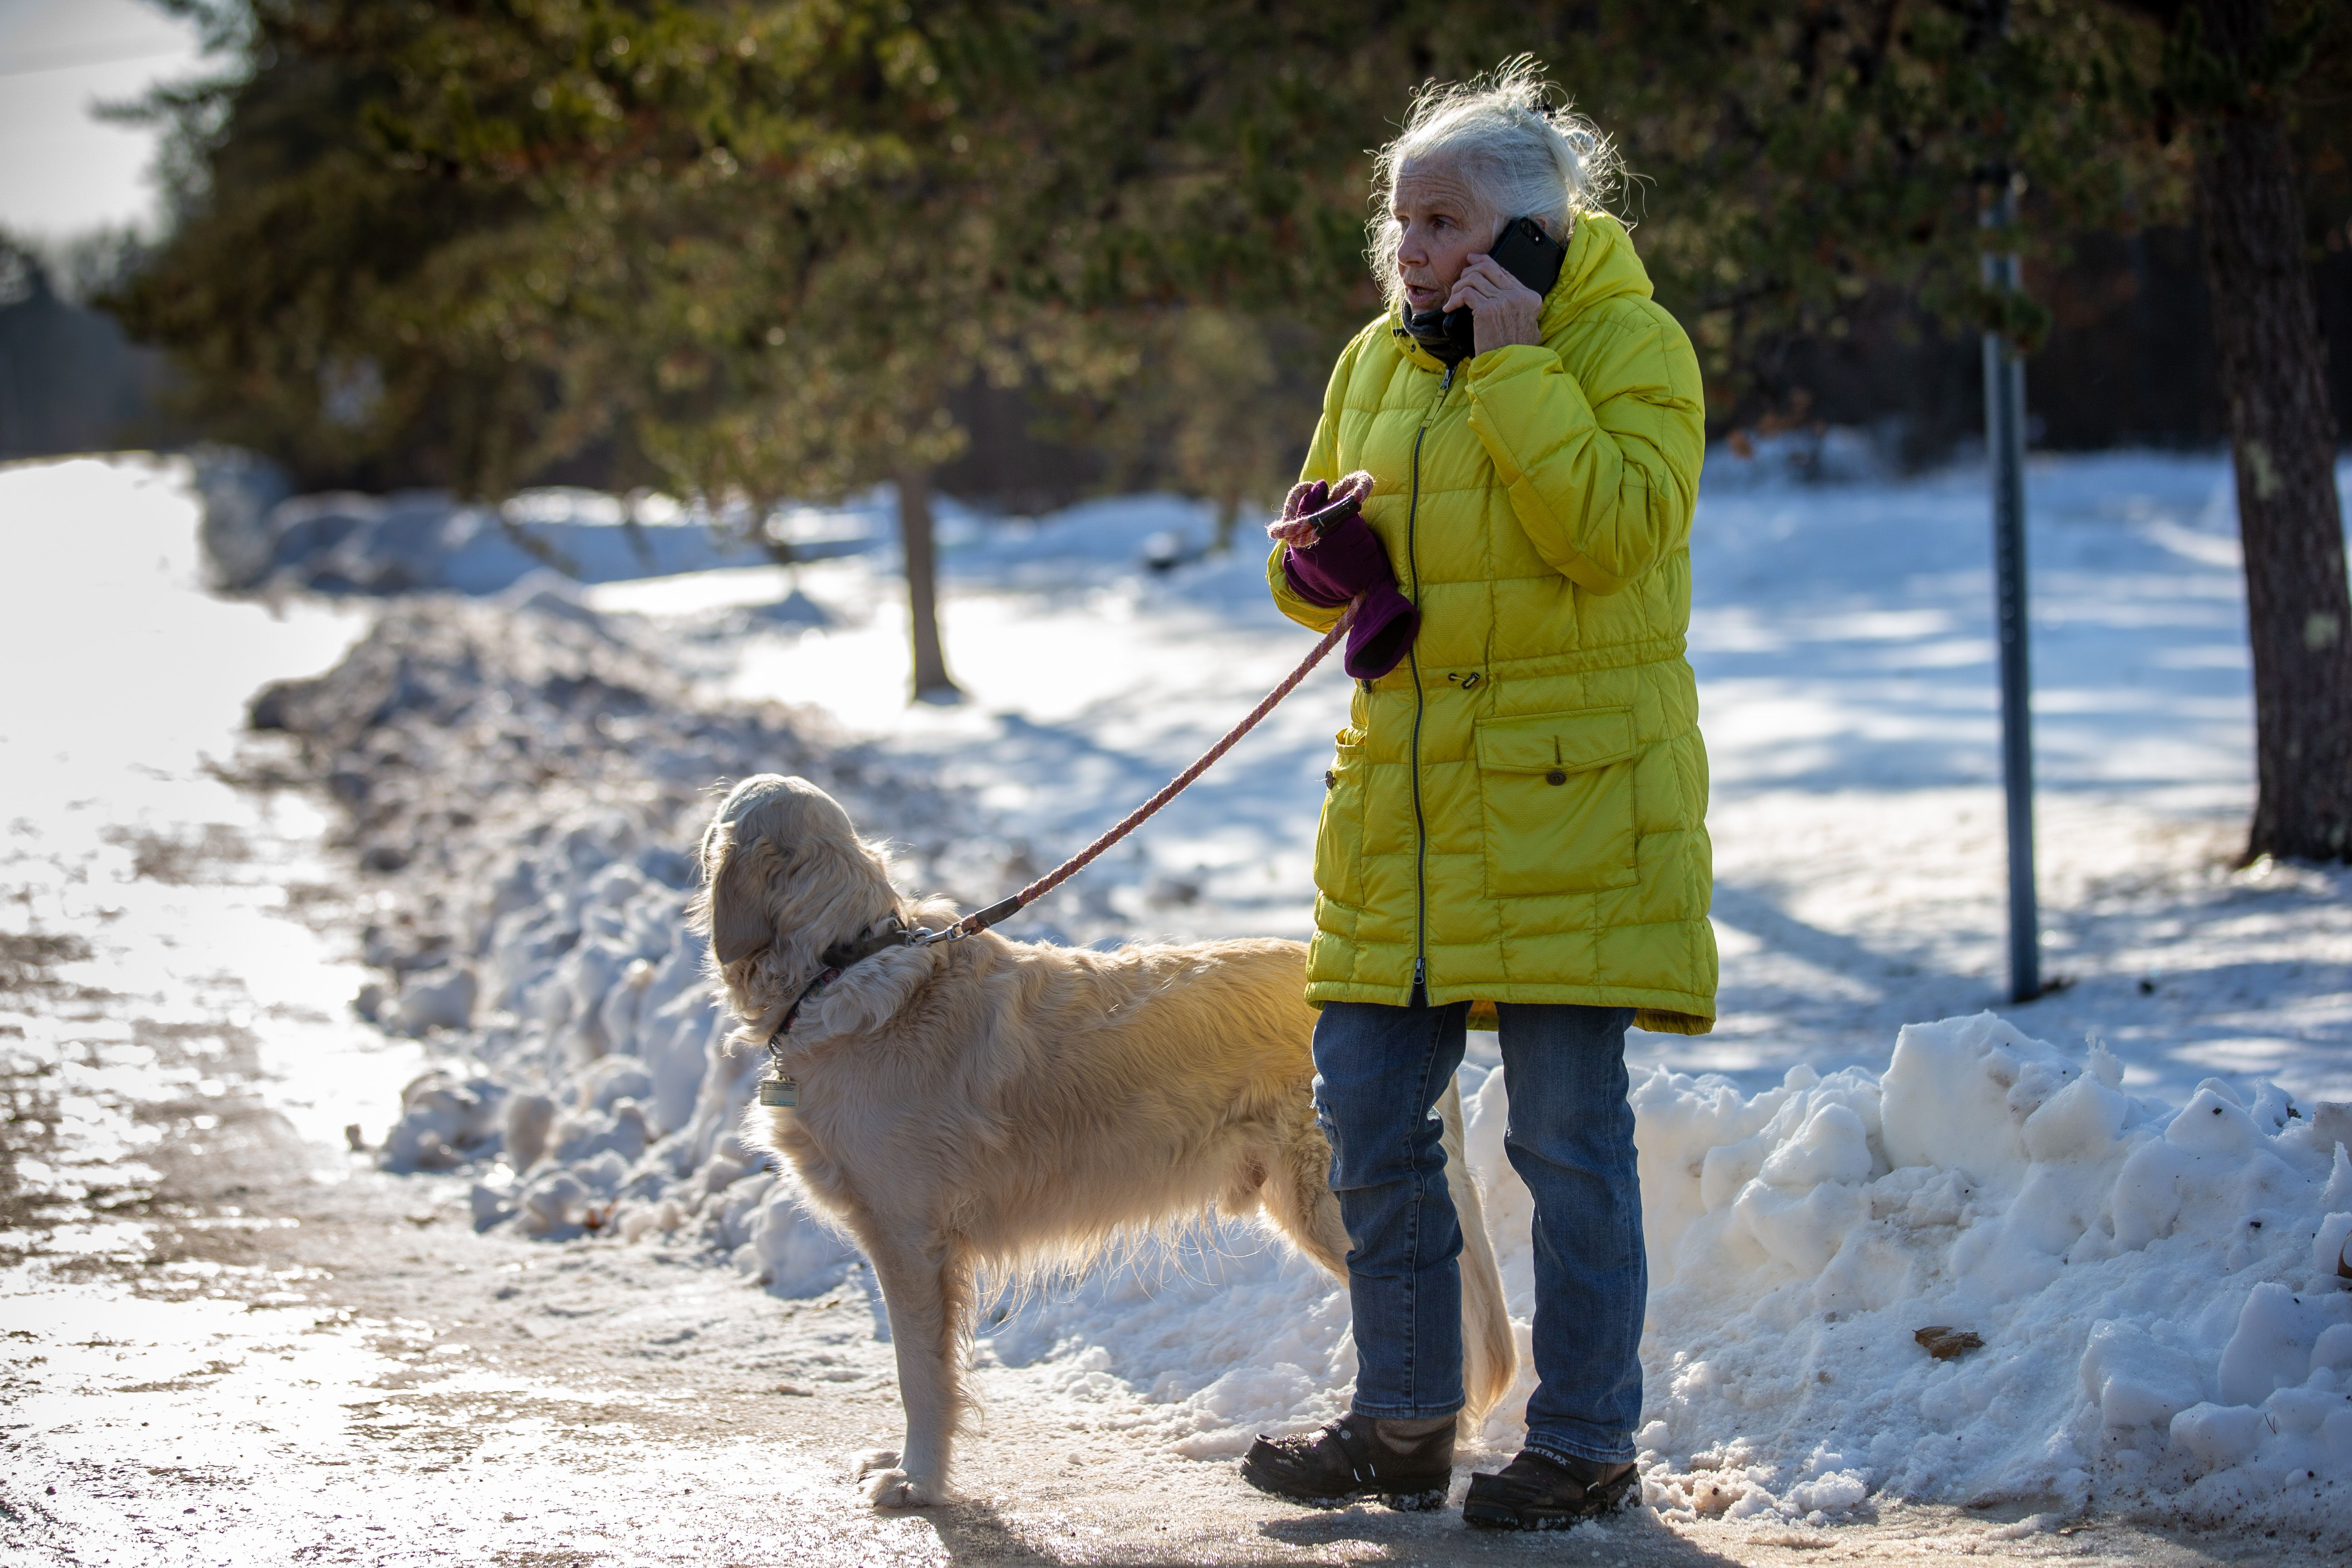 Jeanne Nutter speaks to the press on January 11, 2019 in Gordon, Wisconsin. Nutter, walking her dog near the cabin she owns with her husband Forrest on January 10, encountered Jayme Closs coming out of nearby woods. (KEREM YUCEL/AFP/Getty Images)